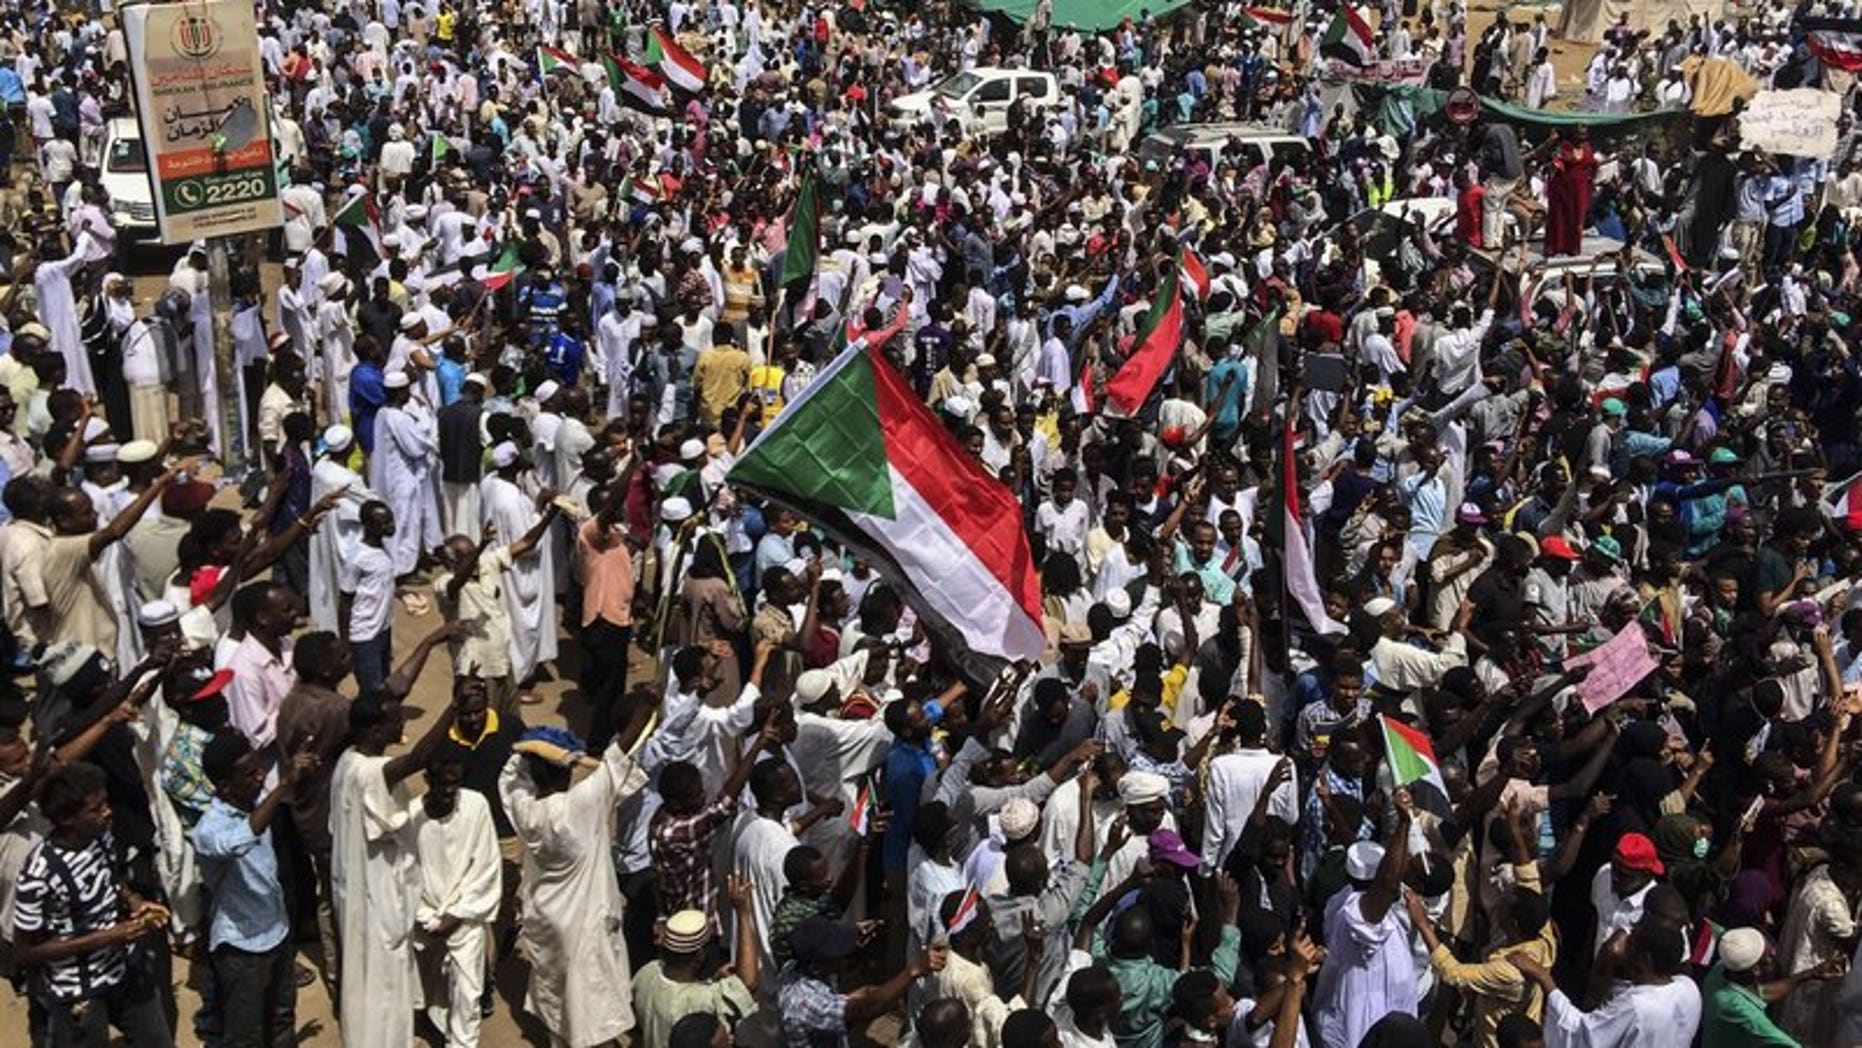 Westlake Legal Group 0563cc6d-800 Sudan protest leaders urge people to remain in streets amid military coup, with 16 people killed in last few days Lukas Mikelionis fox-news/world/world-regions/africa fox-news/world/conflicts fox news fnc/world fnc article 34aaddf4-e7fc-50a5-bdaa-8226c65b142d